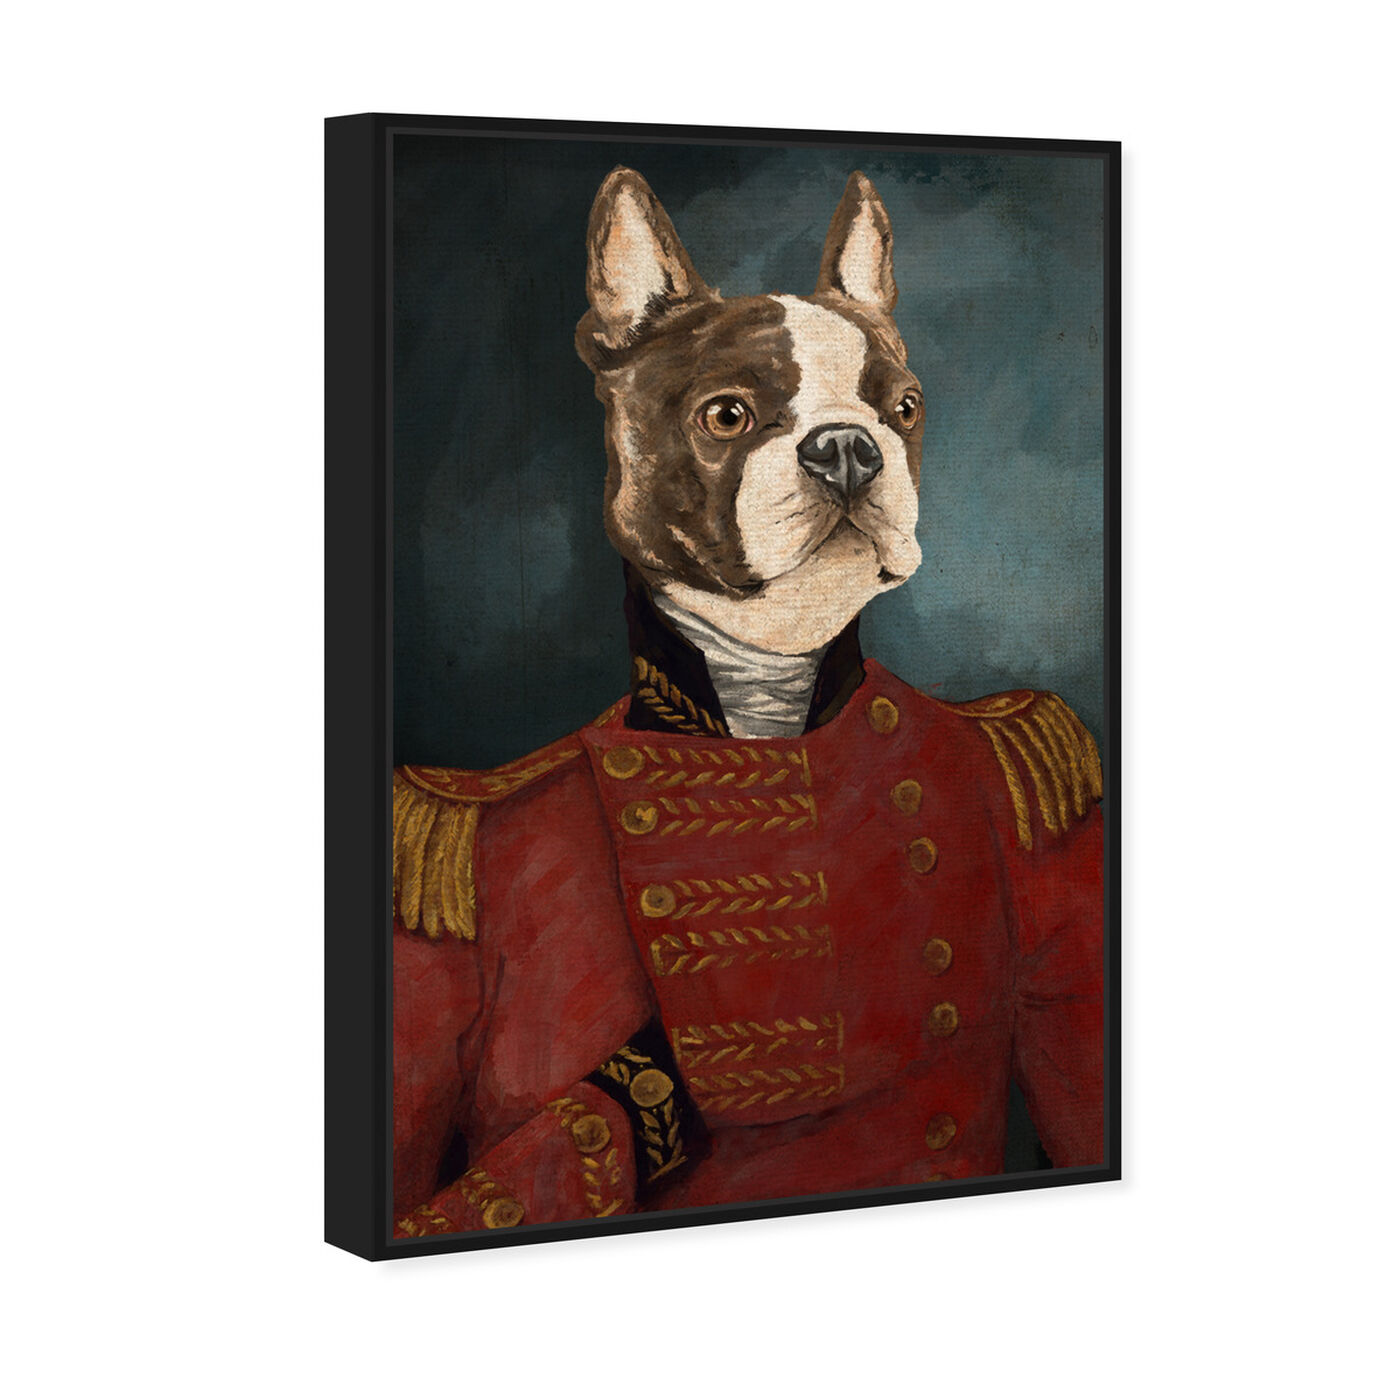 Angled view of Dapper Terrier featuring animals and dogs and puppies art.